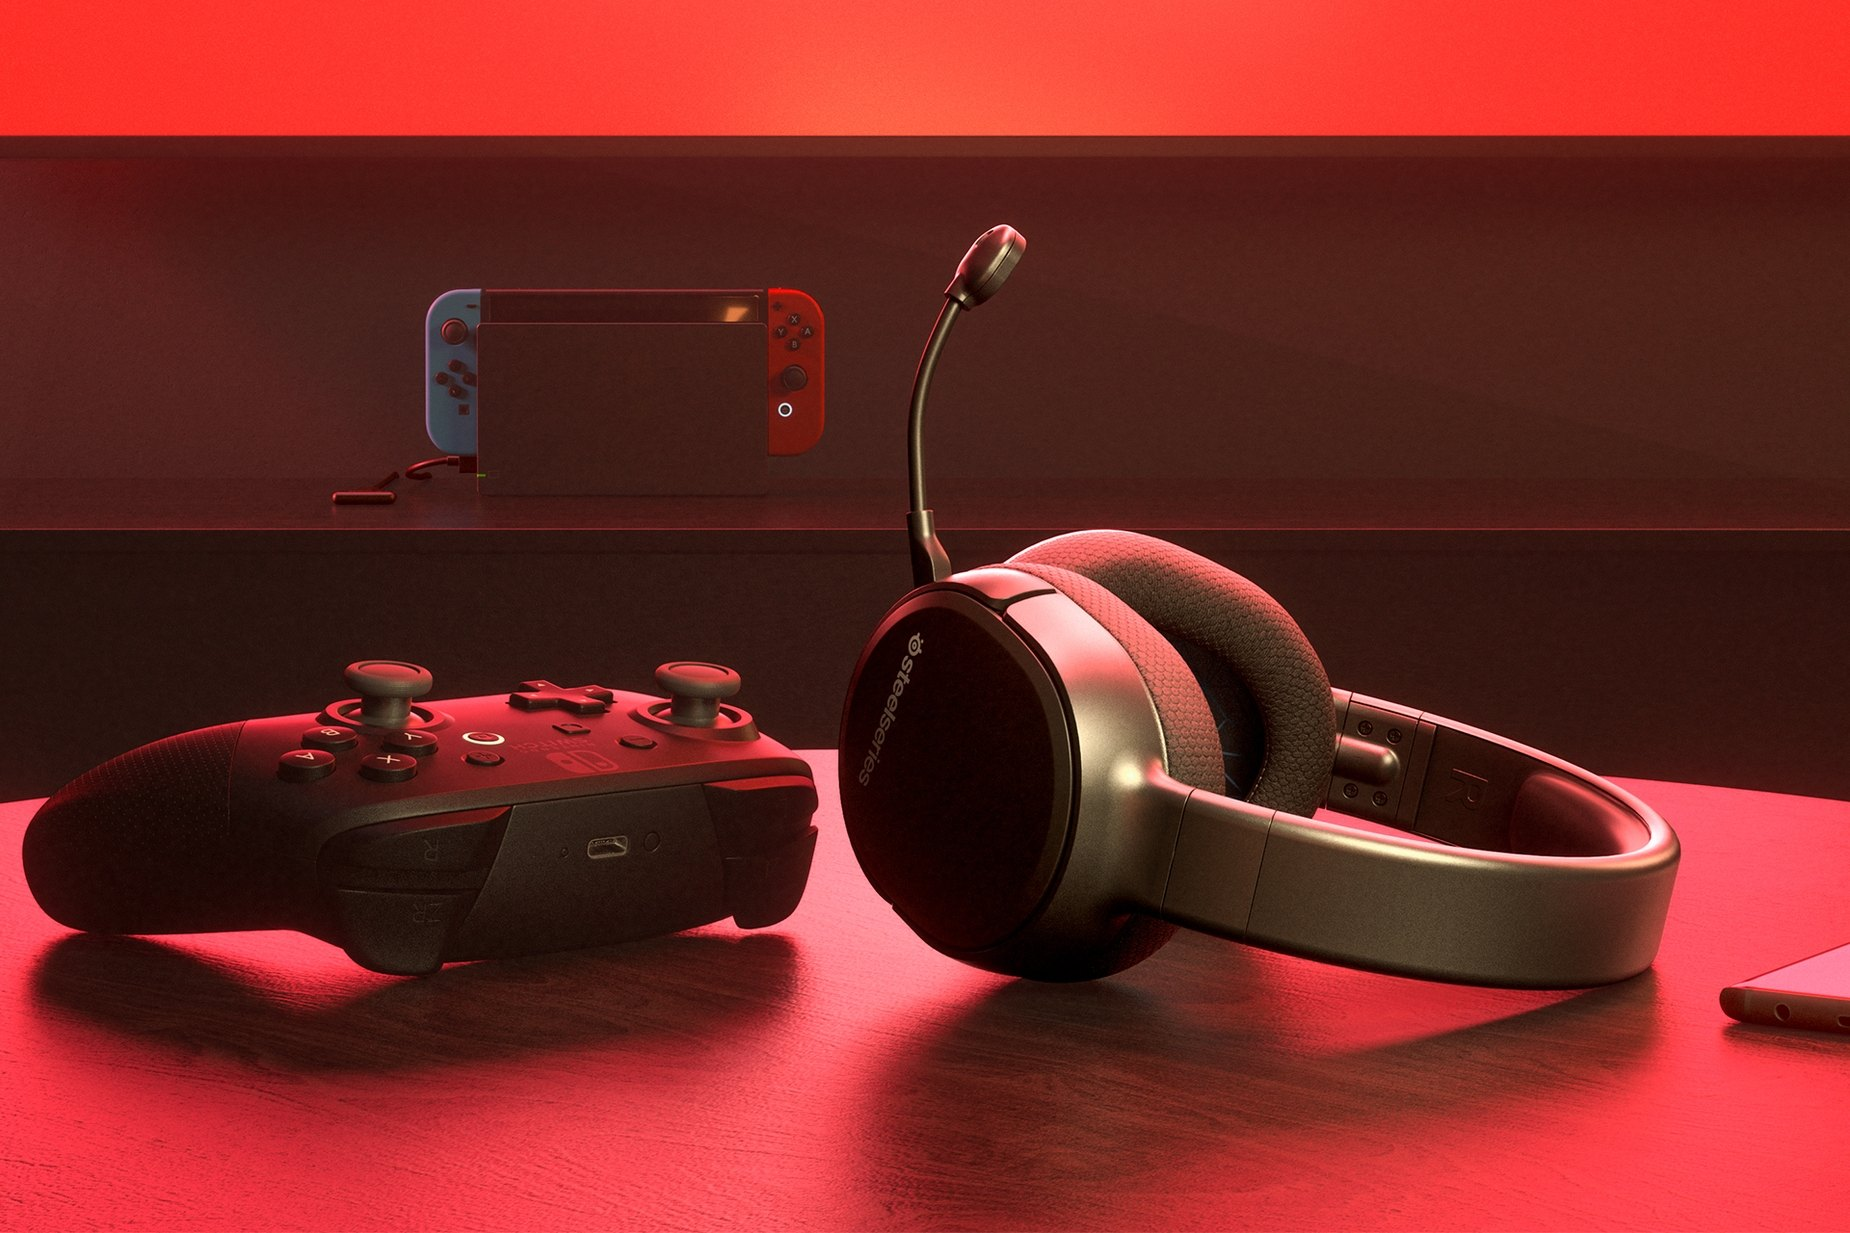 Arctis 1 Wireless for Switch gaming headset on table with a Nintendo Switch Pro controller and a Switch game console in the background